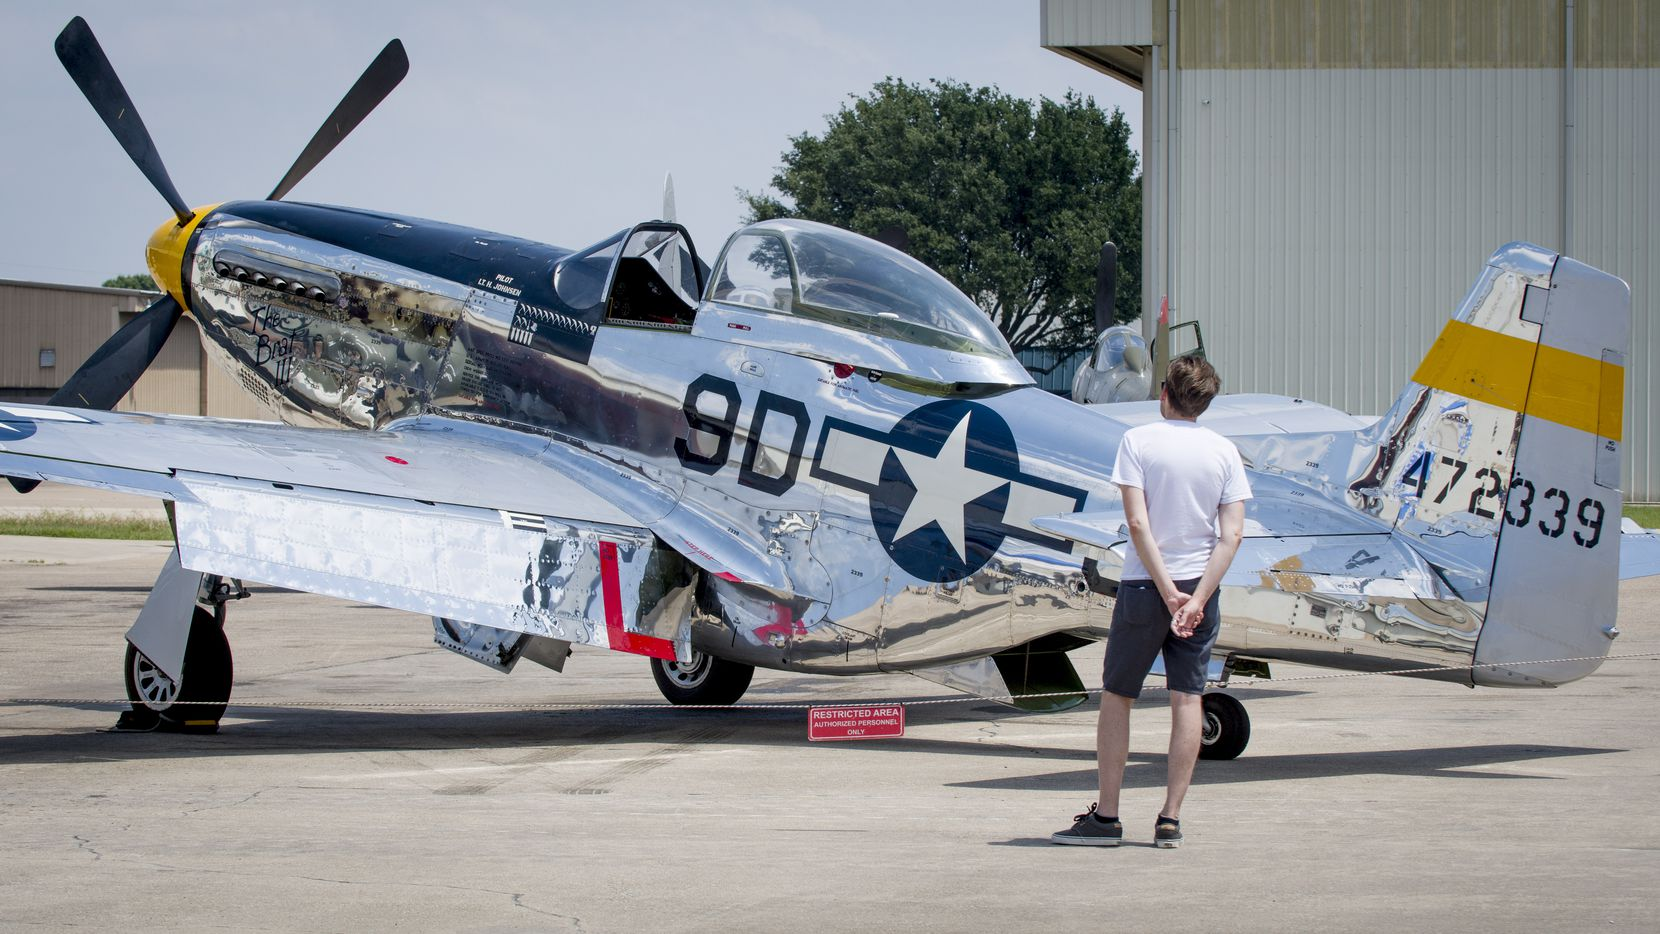 A P-51 Mustang is among the aircraft on display at the Cavanaugh Flight Museum in Addison.